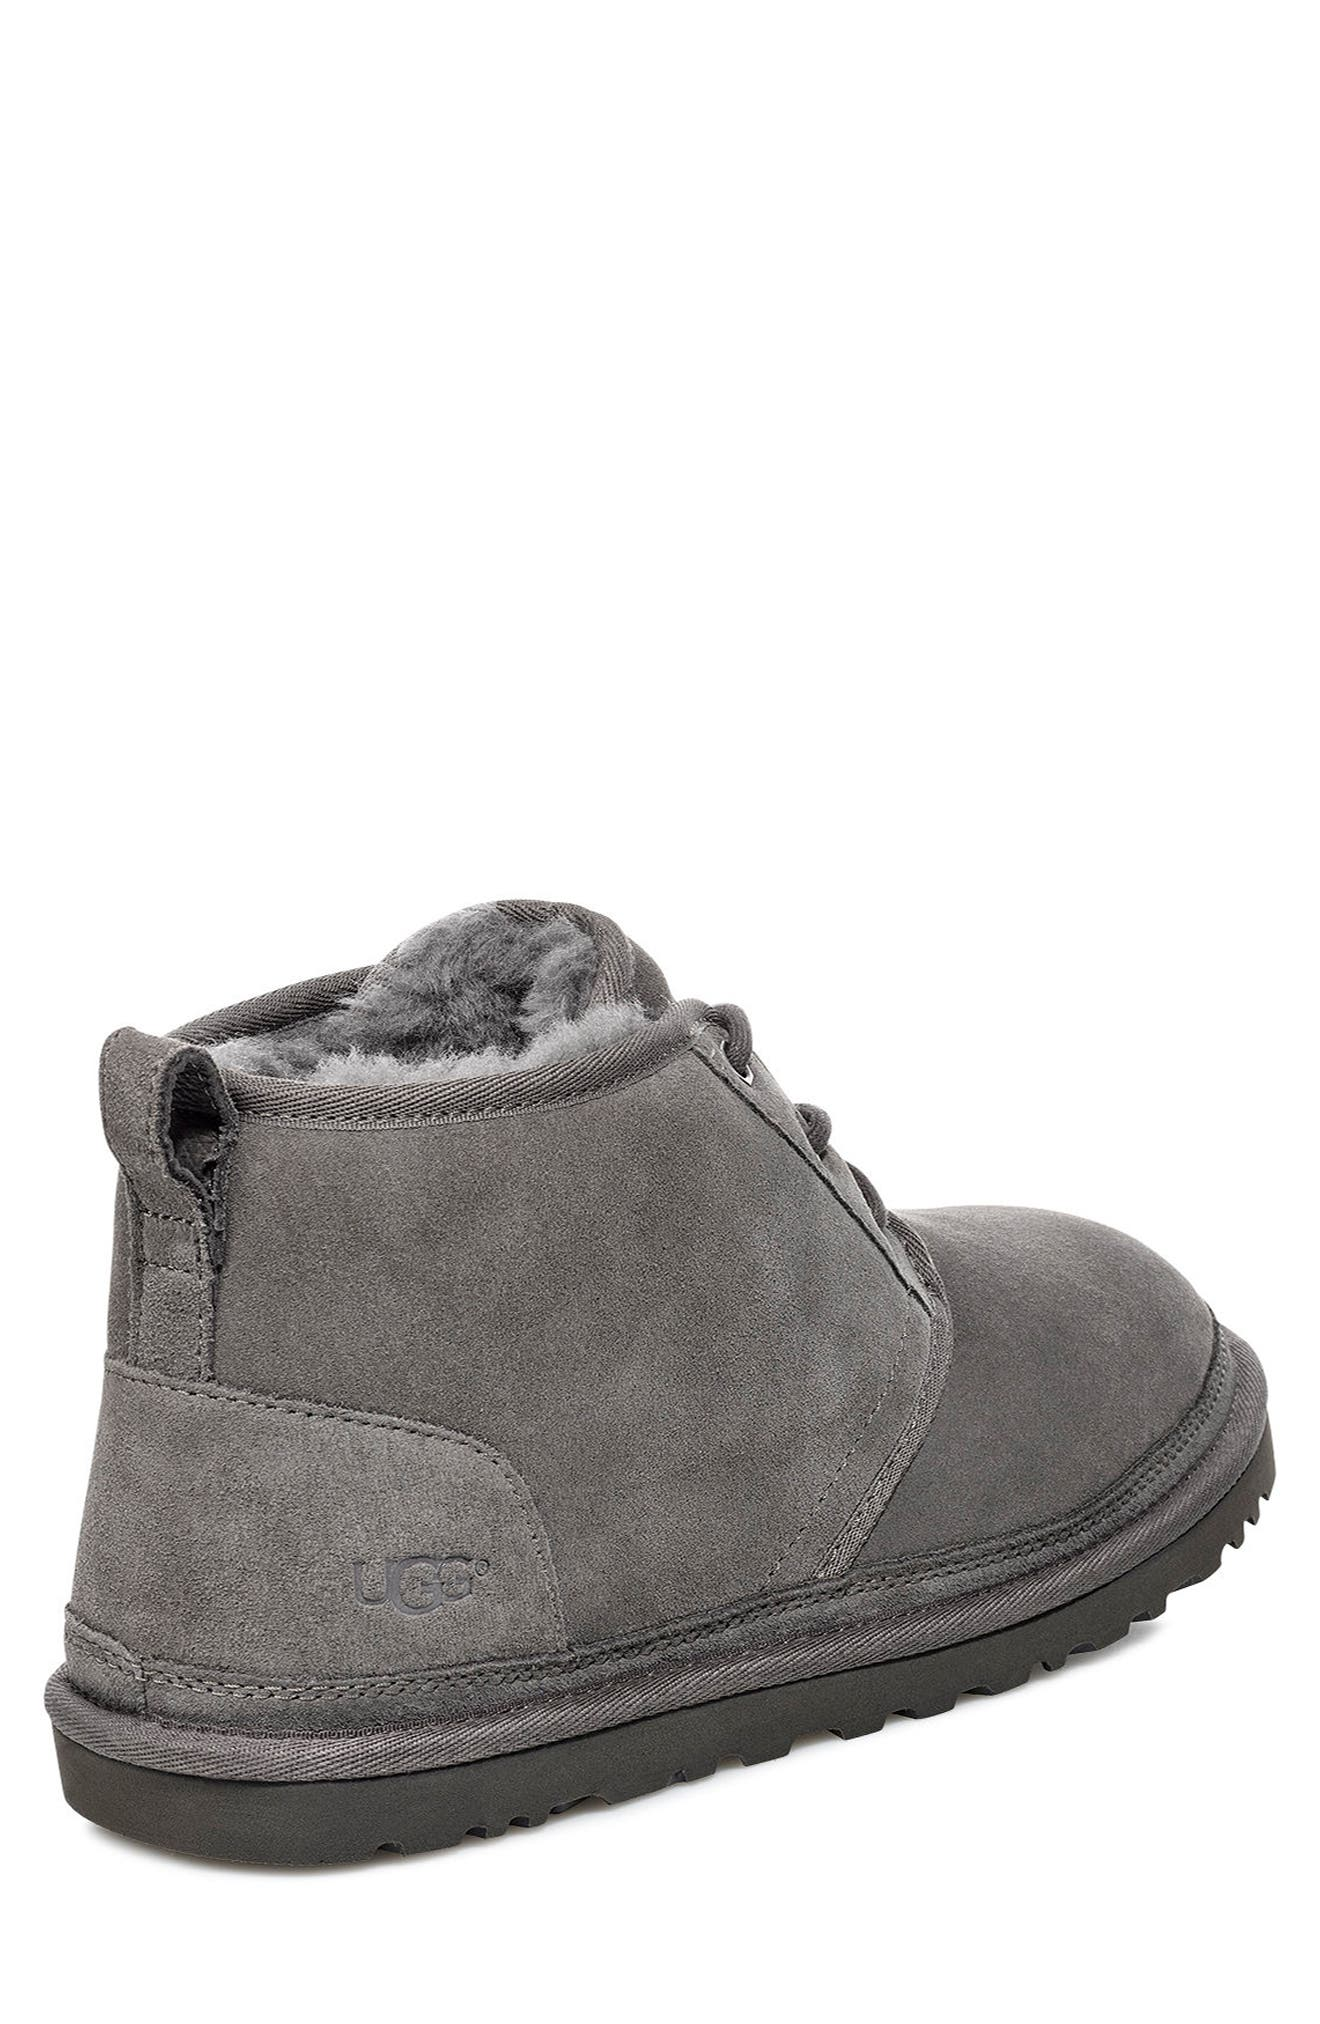 UGG<SUP>®</SUP>, Neumel Chukka Boot, Alternate thumbnail 2, color, CHARCOAL SUEDE